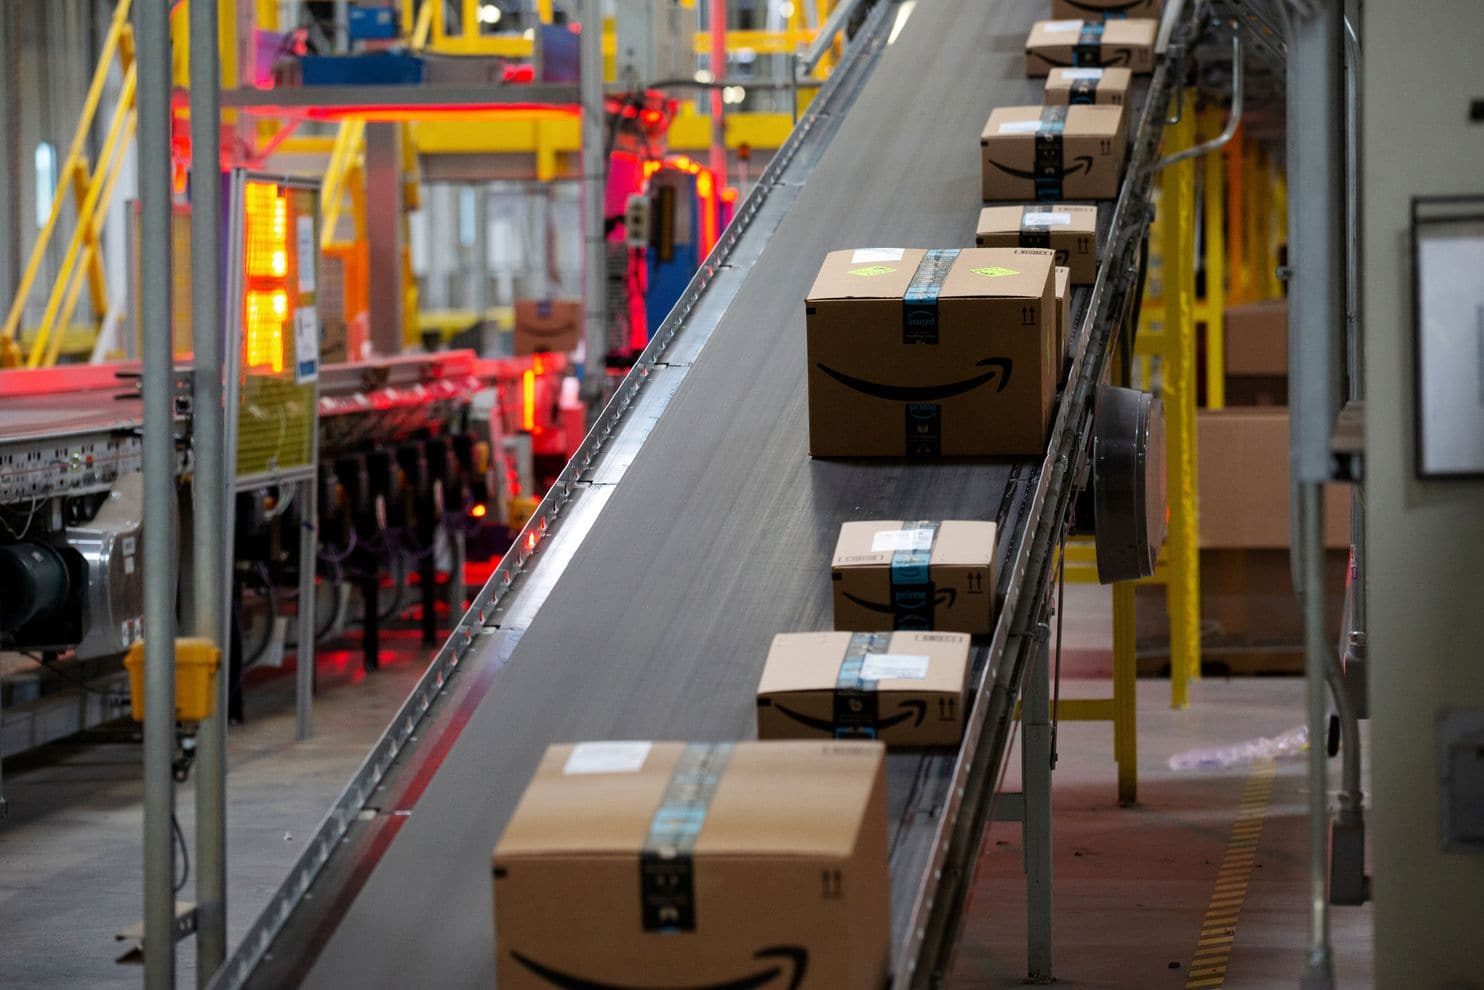 Muslim women accuse Amazon of 'harassing and hostile' work conditions